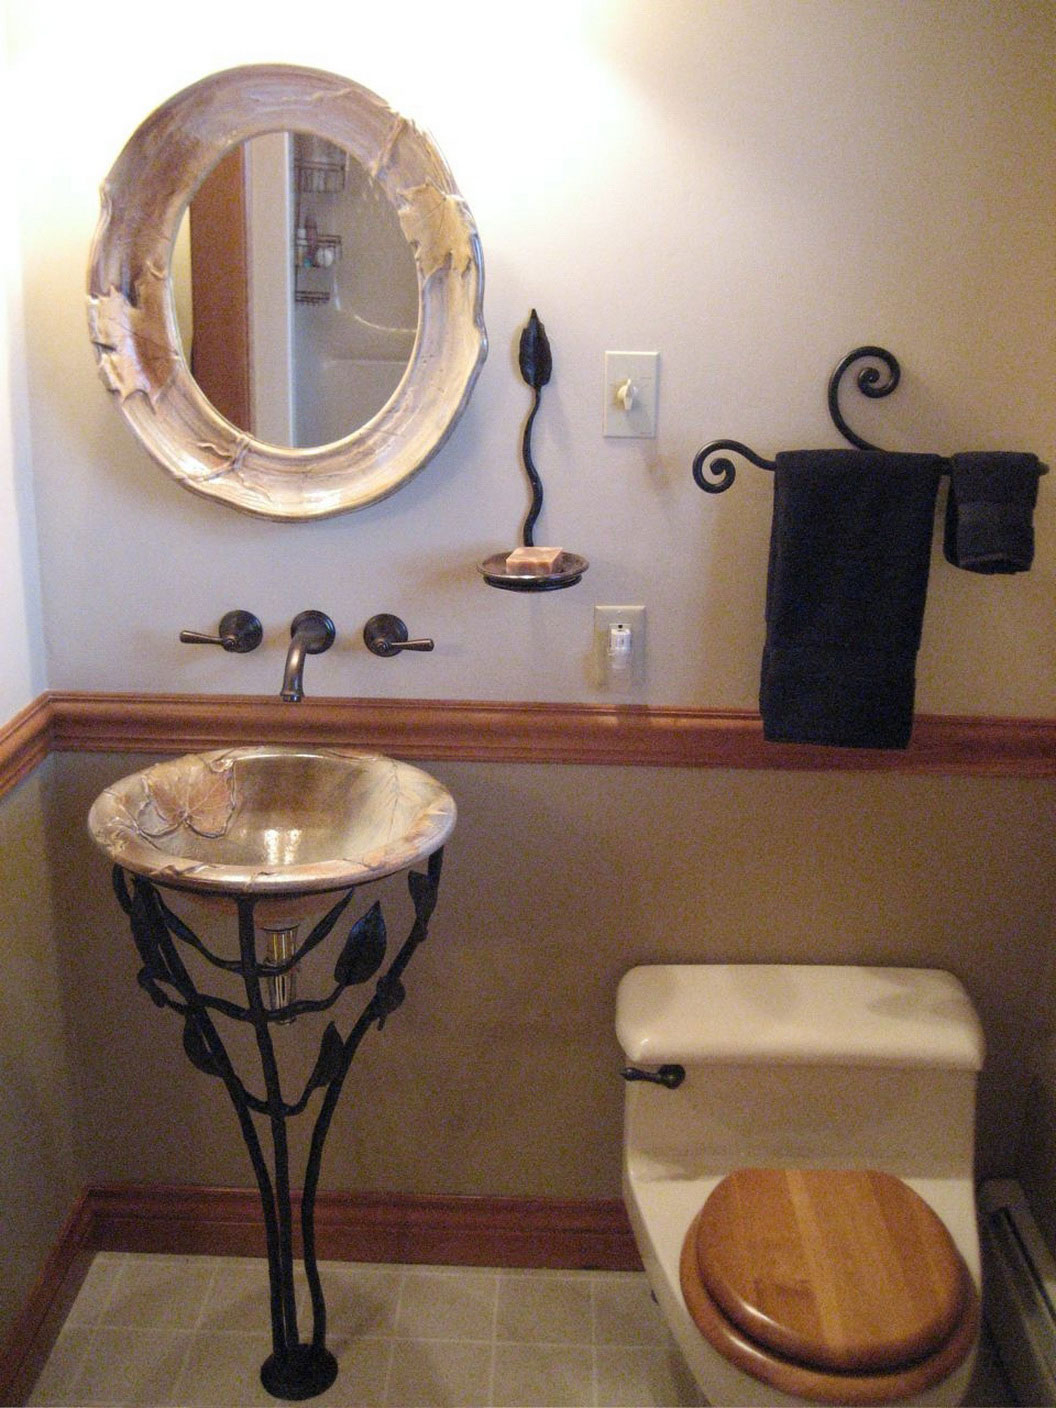 Glamorous Small Vessel Sinks For Bathrooms | Homesfeed with regard to Review Small Sinks For Small Bathrooms